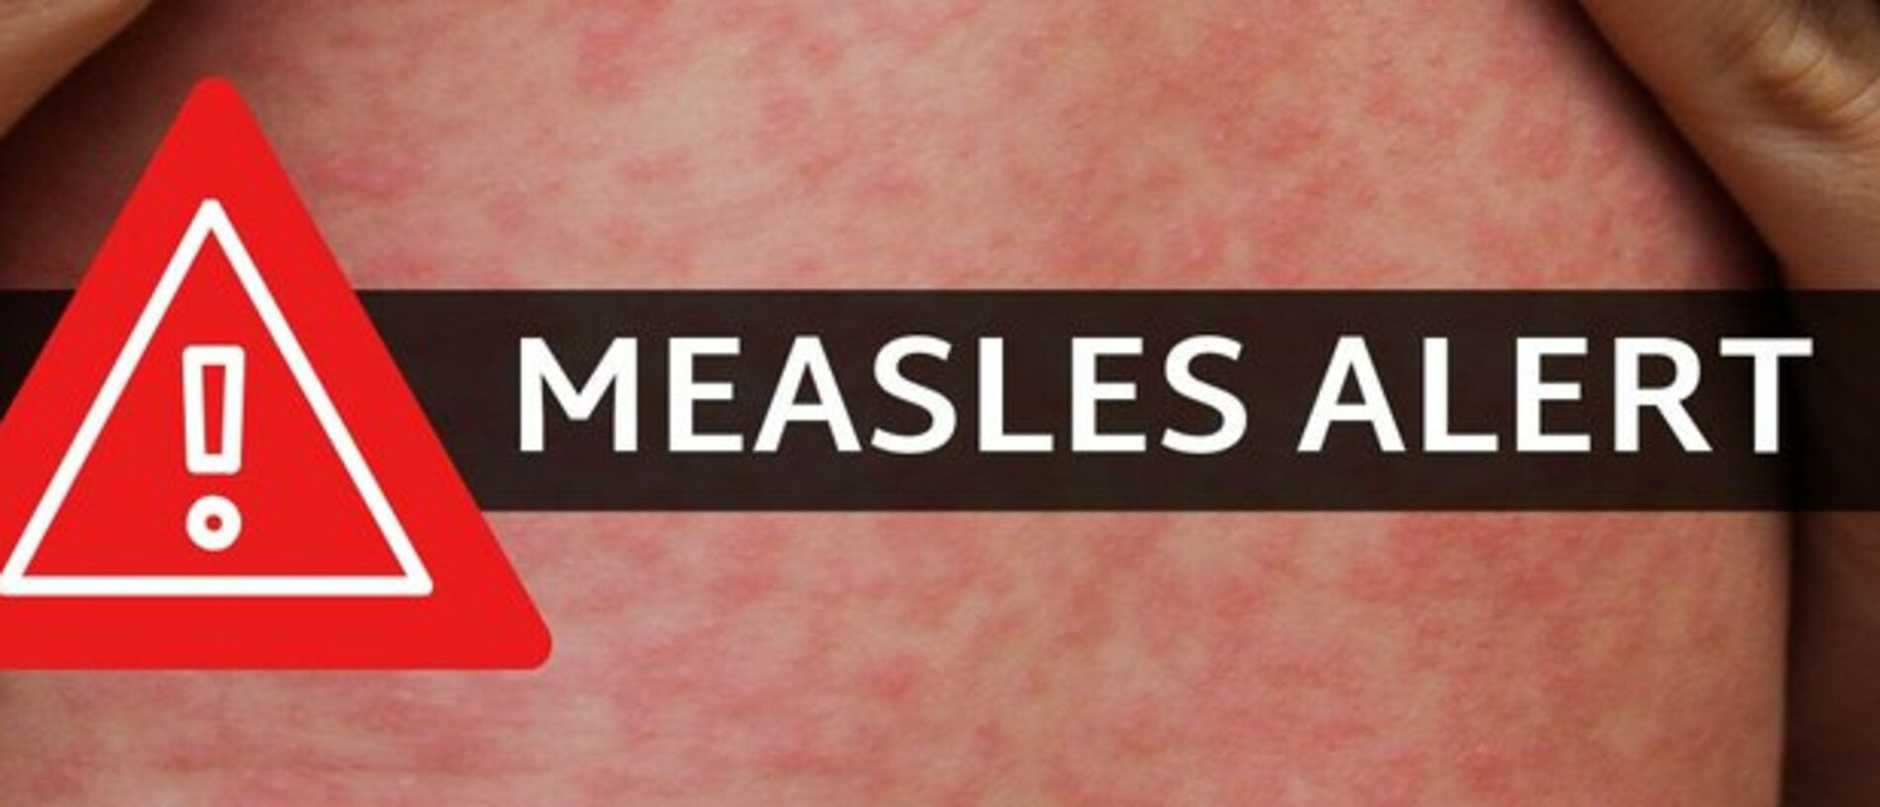 NSW Health has issued a measles warning after an infected man returned to Sydney from overseas.